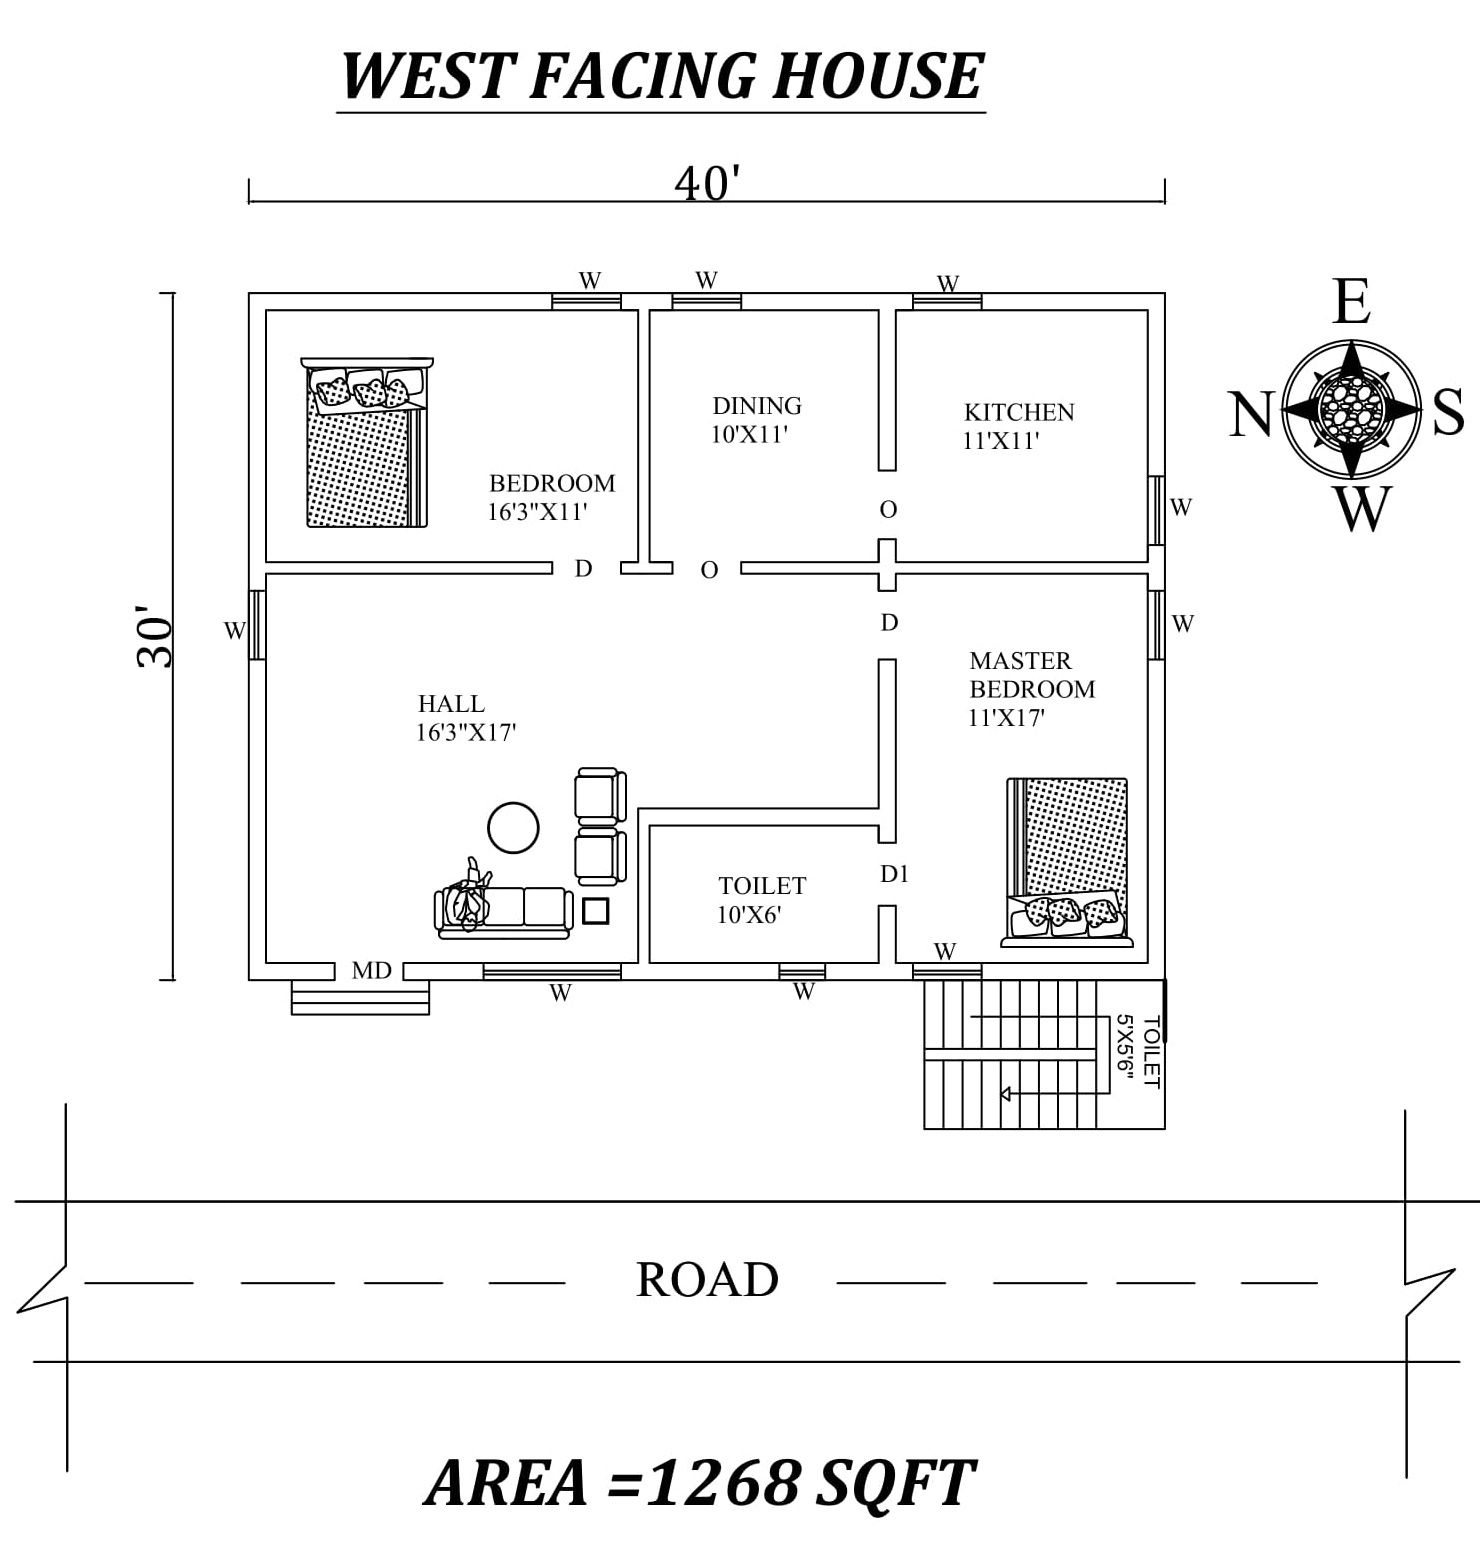 40 X30 Marvelous 2bhk West Facing House Plan As Per Vastu Shastra Autocad Dwg And Pdf File Detai In 2020 West Facing House Small House Design Plans Little House Plans